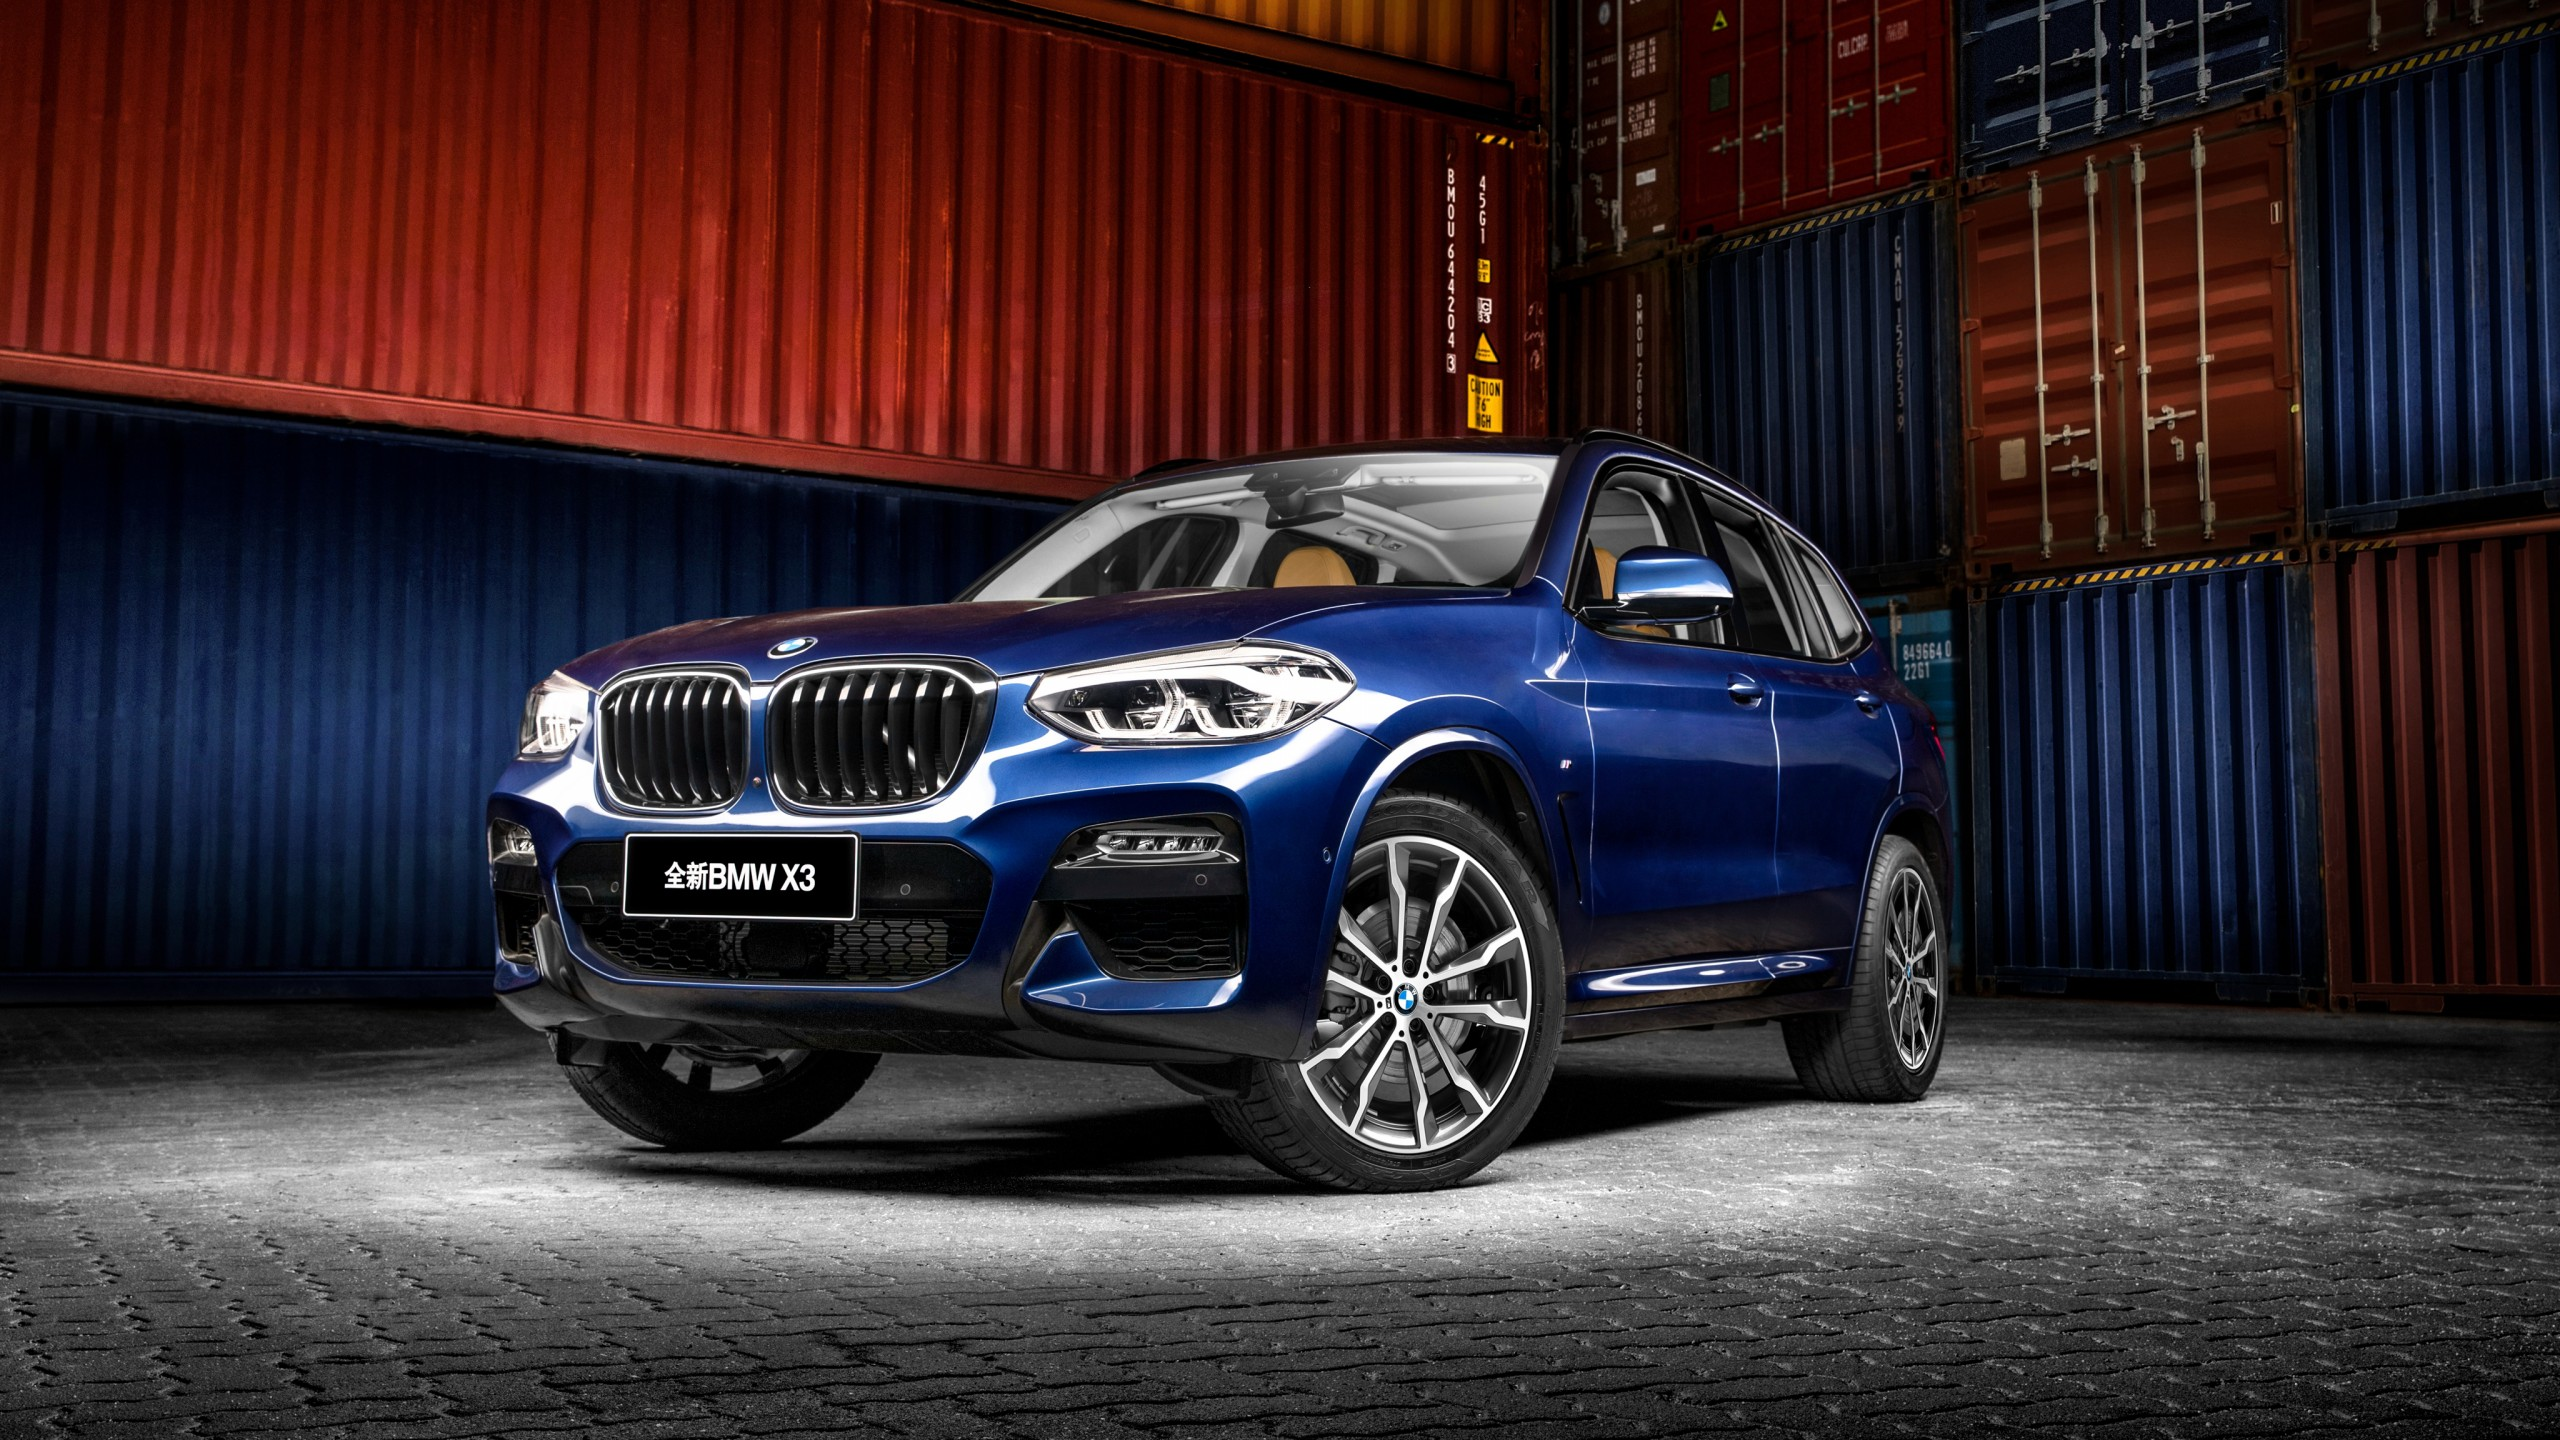 2018 bmw x3 xdrive30i m sport china 4k 2 wallpaper hd. Black Bedroom Furniture Sets. Home Design Ideas